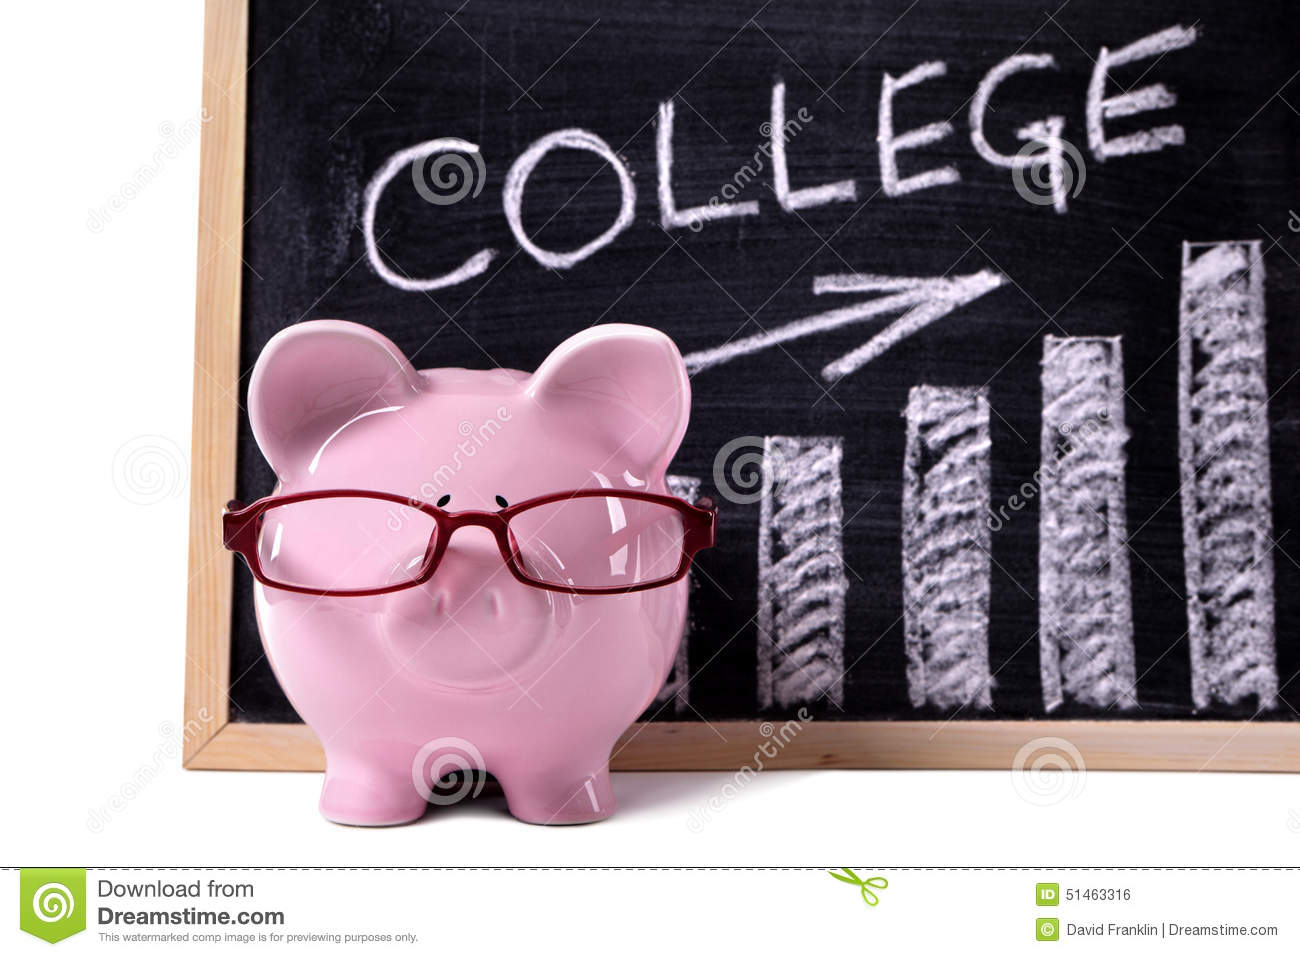 investment and college education An education savings account can supplement a 529 college savings plan and help you pay for education expenses from kindergarten through college.